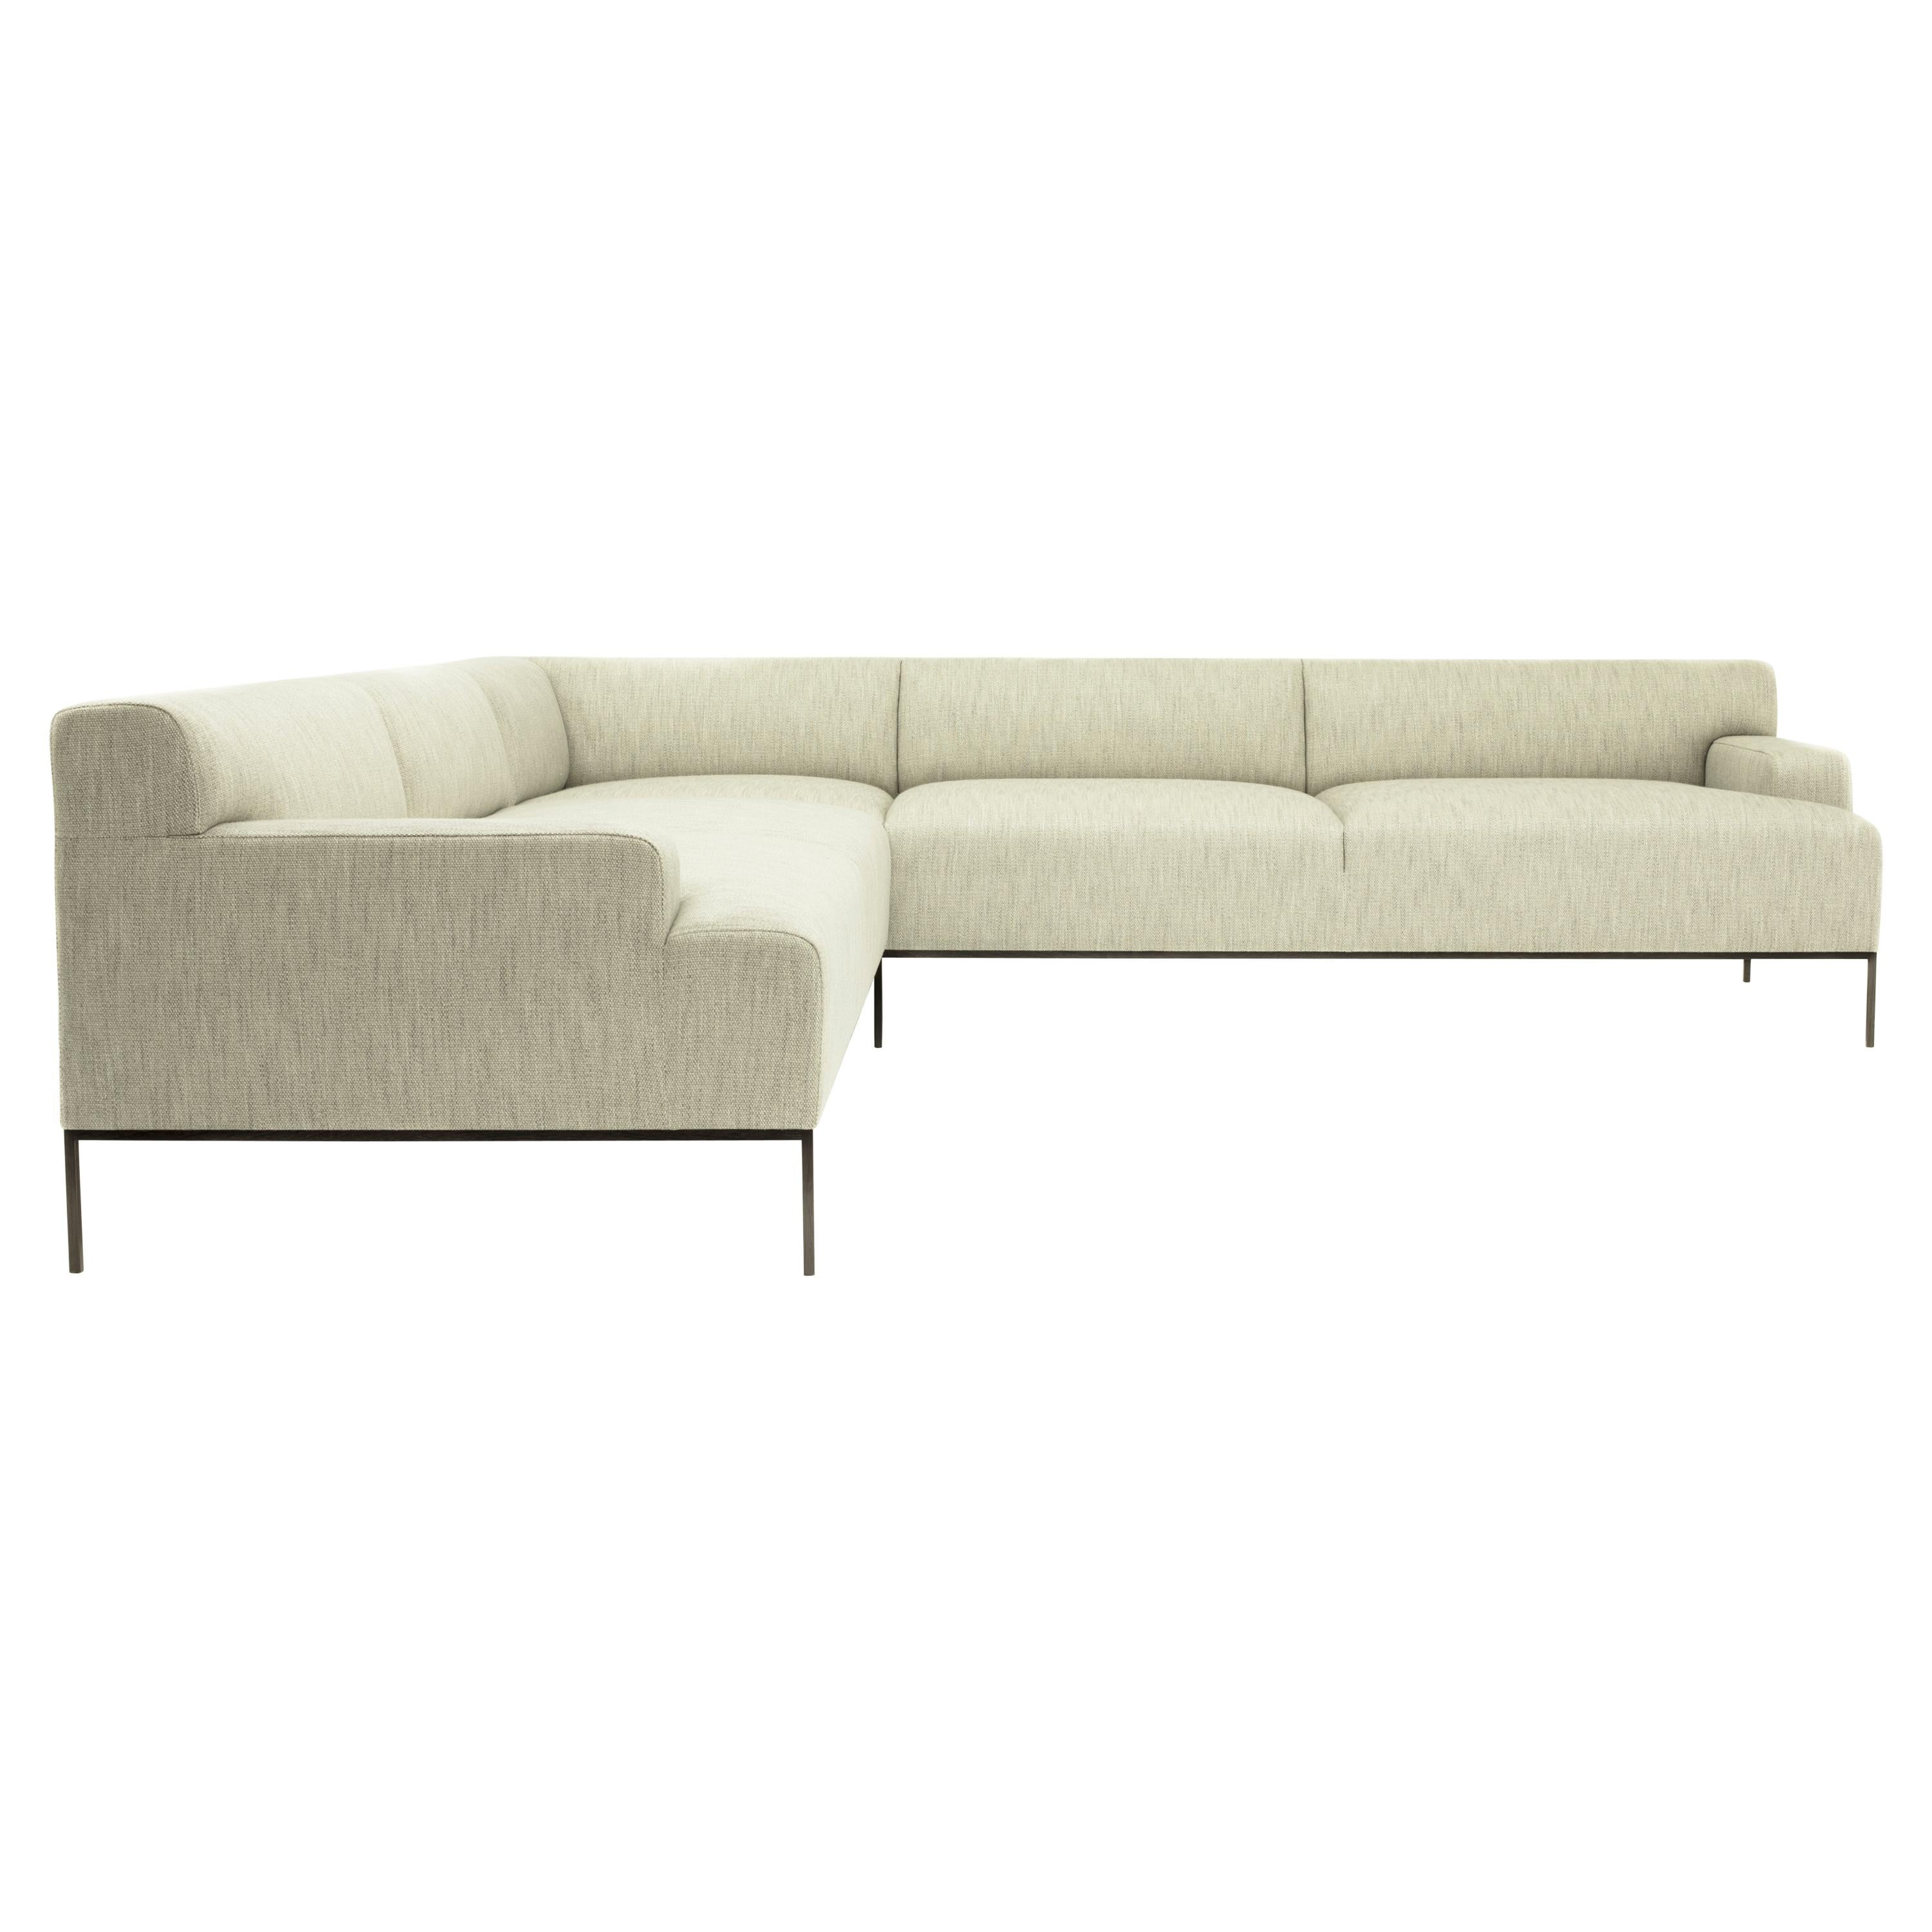 Stiletto Sectional Contemporary Channeling Seat Back Base Tight Seat Back Wengé